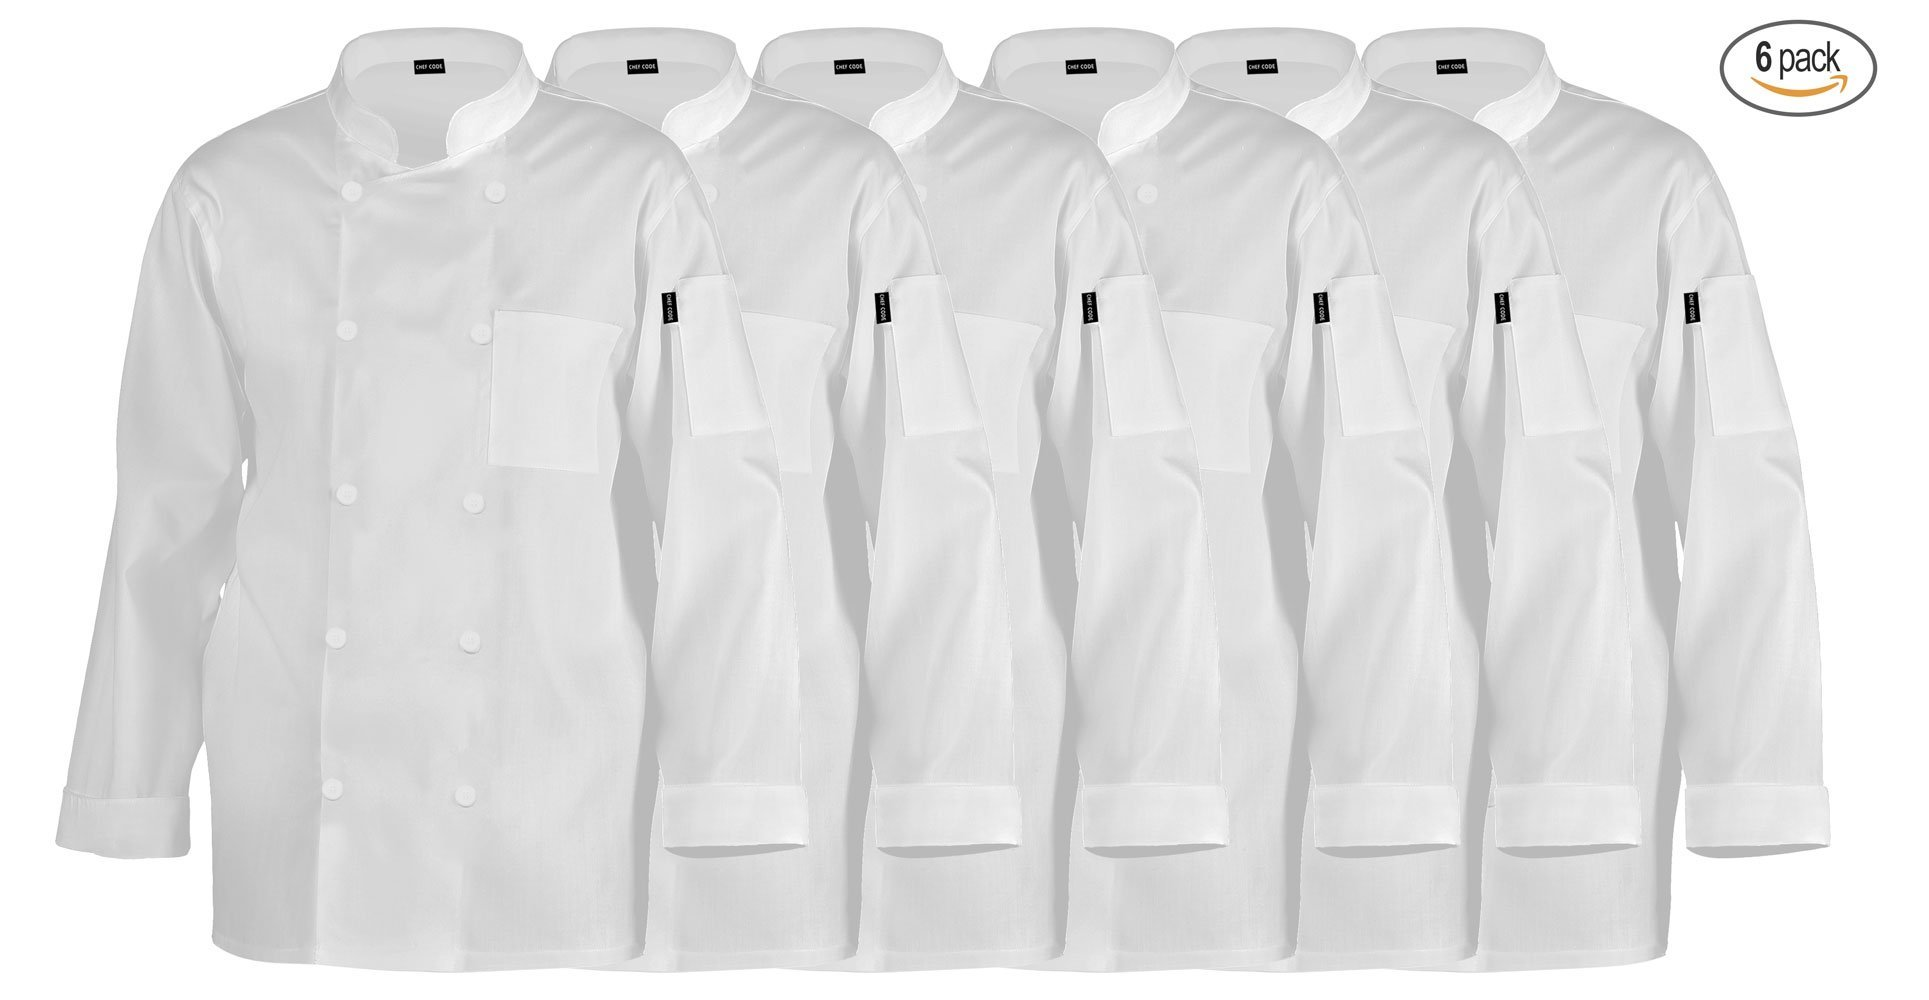 Chef Code Jeff's Executive Chef Coat CC110 (M, 6 Pack - White) by Chef Code